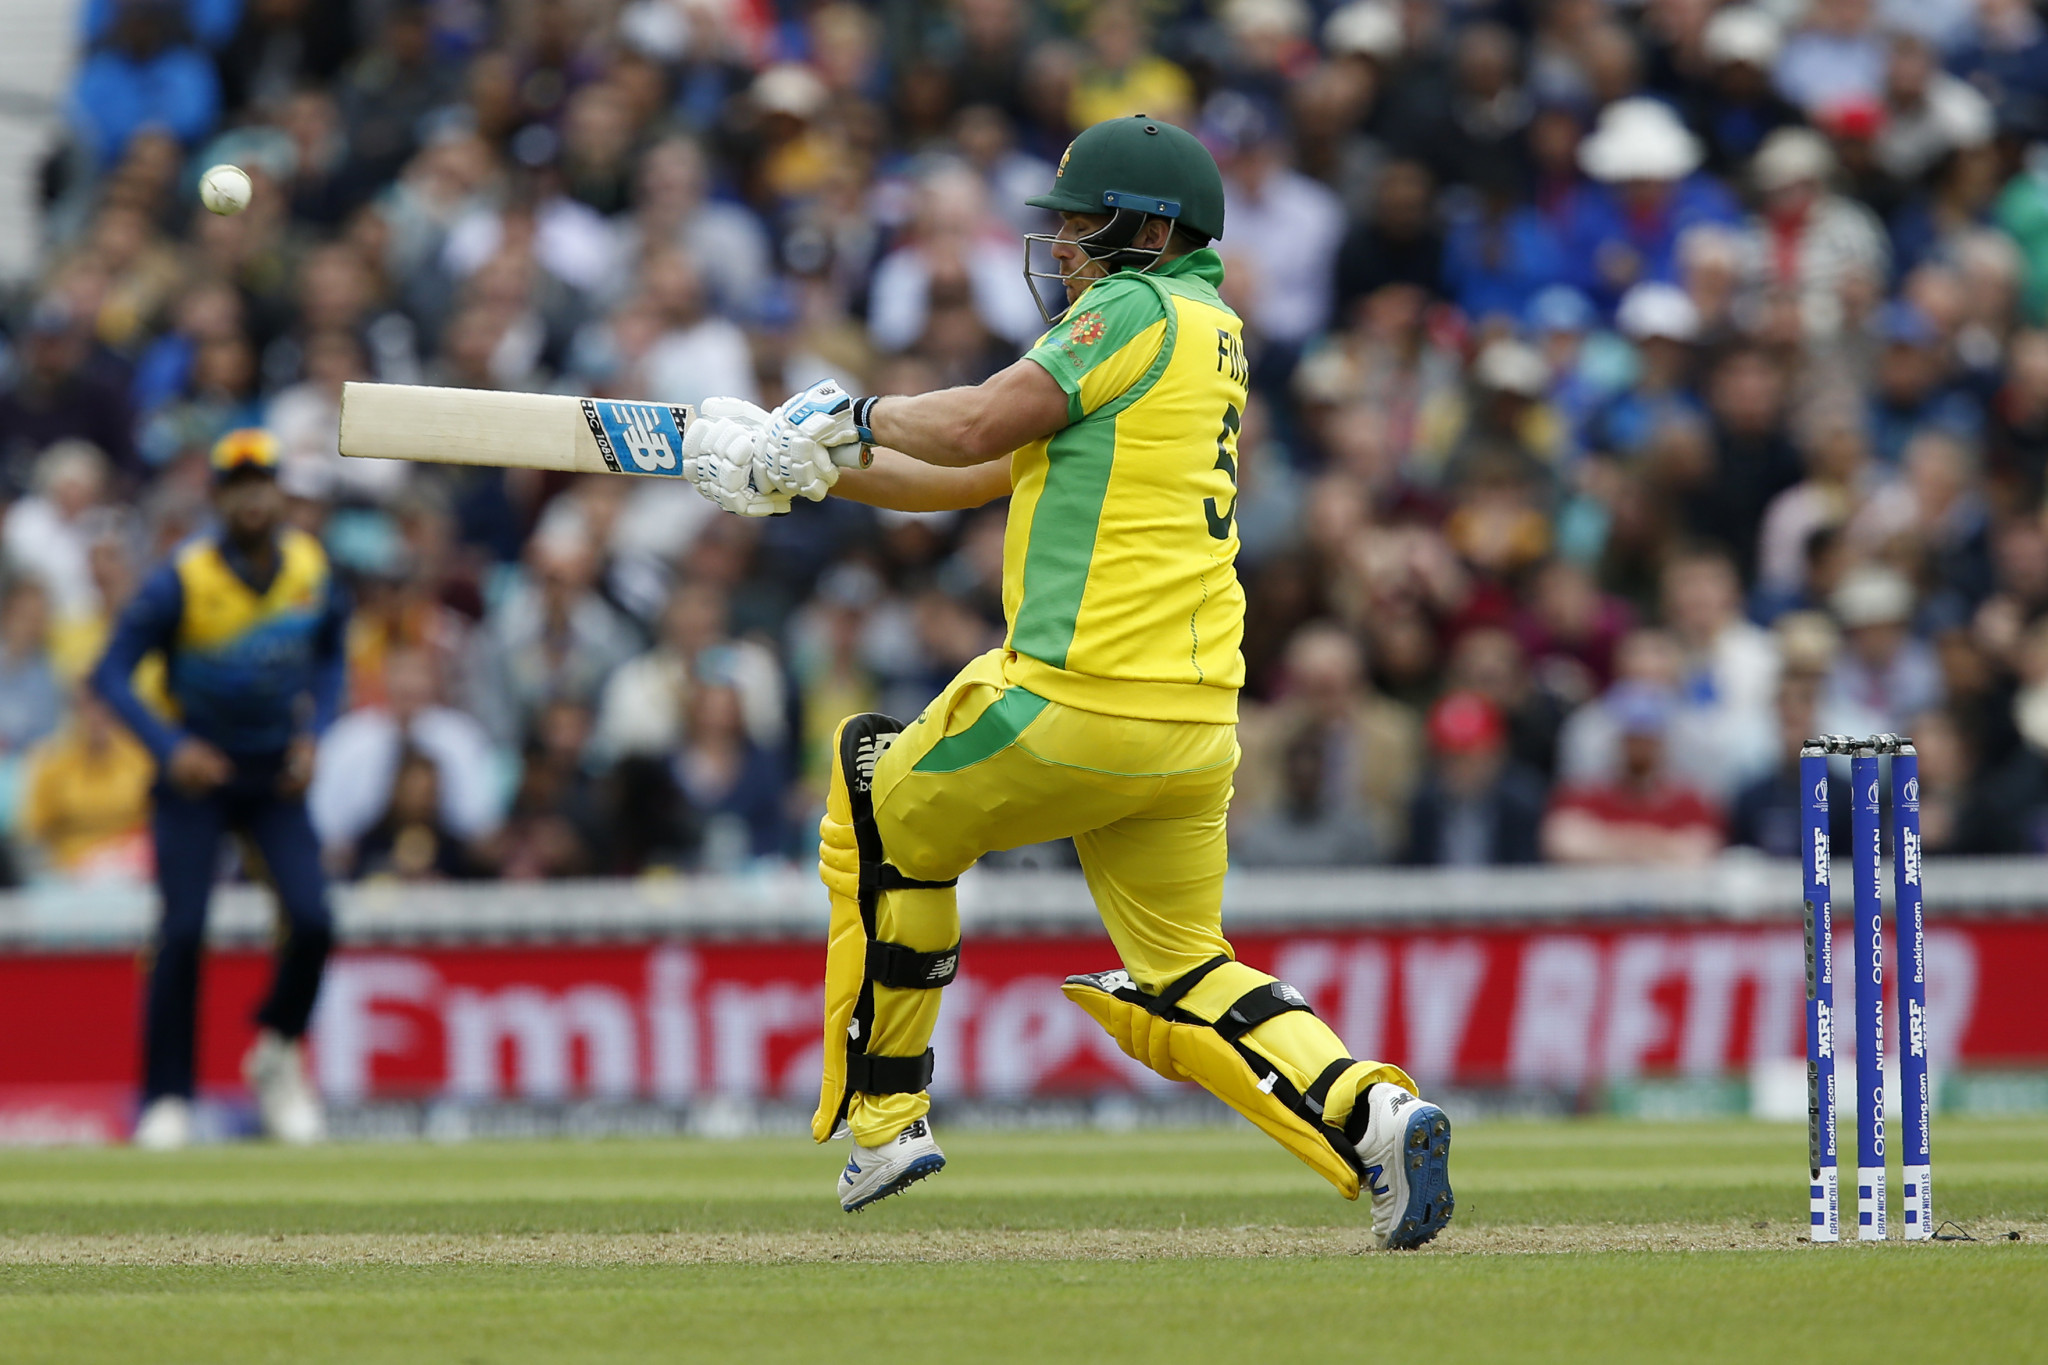 Finch and Starc guide defending champions Australia to victory over Sri Lanka at Cricket World Cup